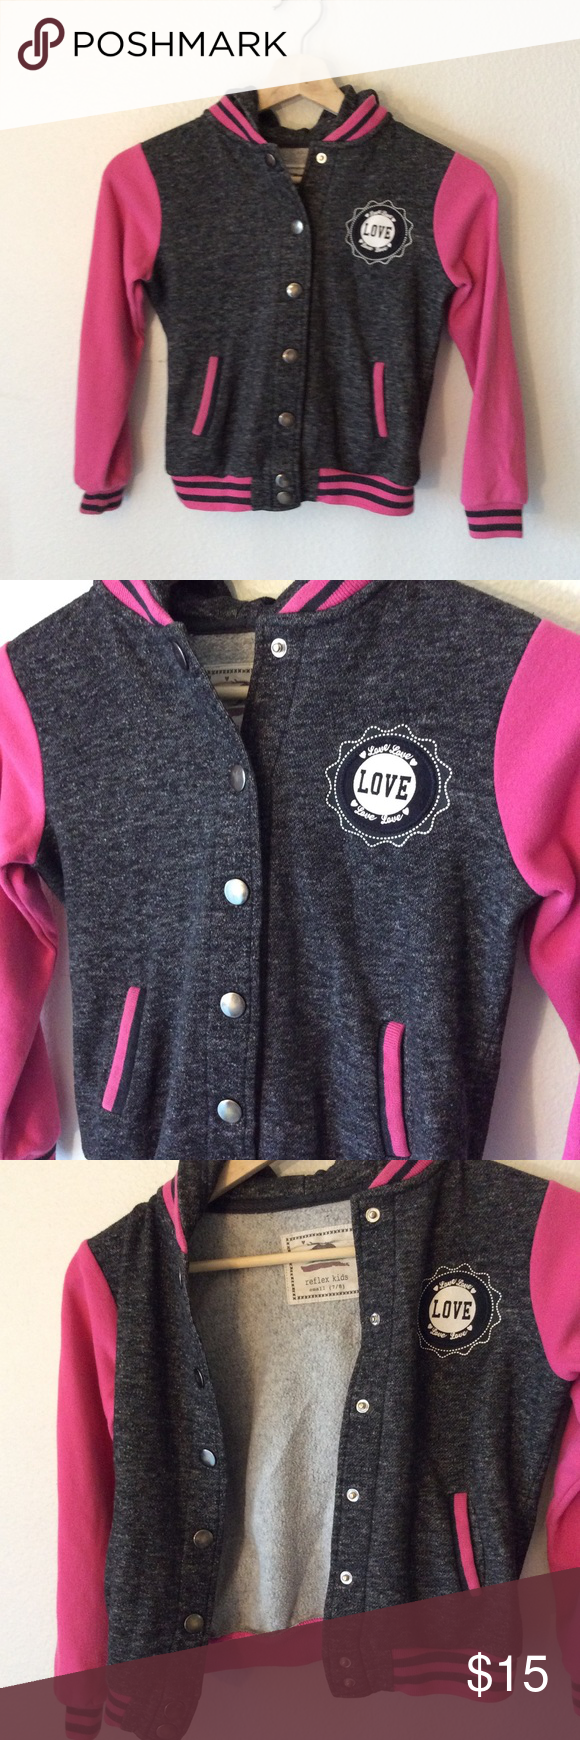 (3 FOR $20 SALE) Reflex Kids Varsity Jacket Pink sleeved faux letterman's jacket from Reflex Kids. See pics for more details.  Very gently used, great condition, no damages.  Girls size small (7-8 year olds) Reflex Kids Jackets & Coats #varsityjacketoutfit